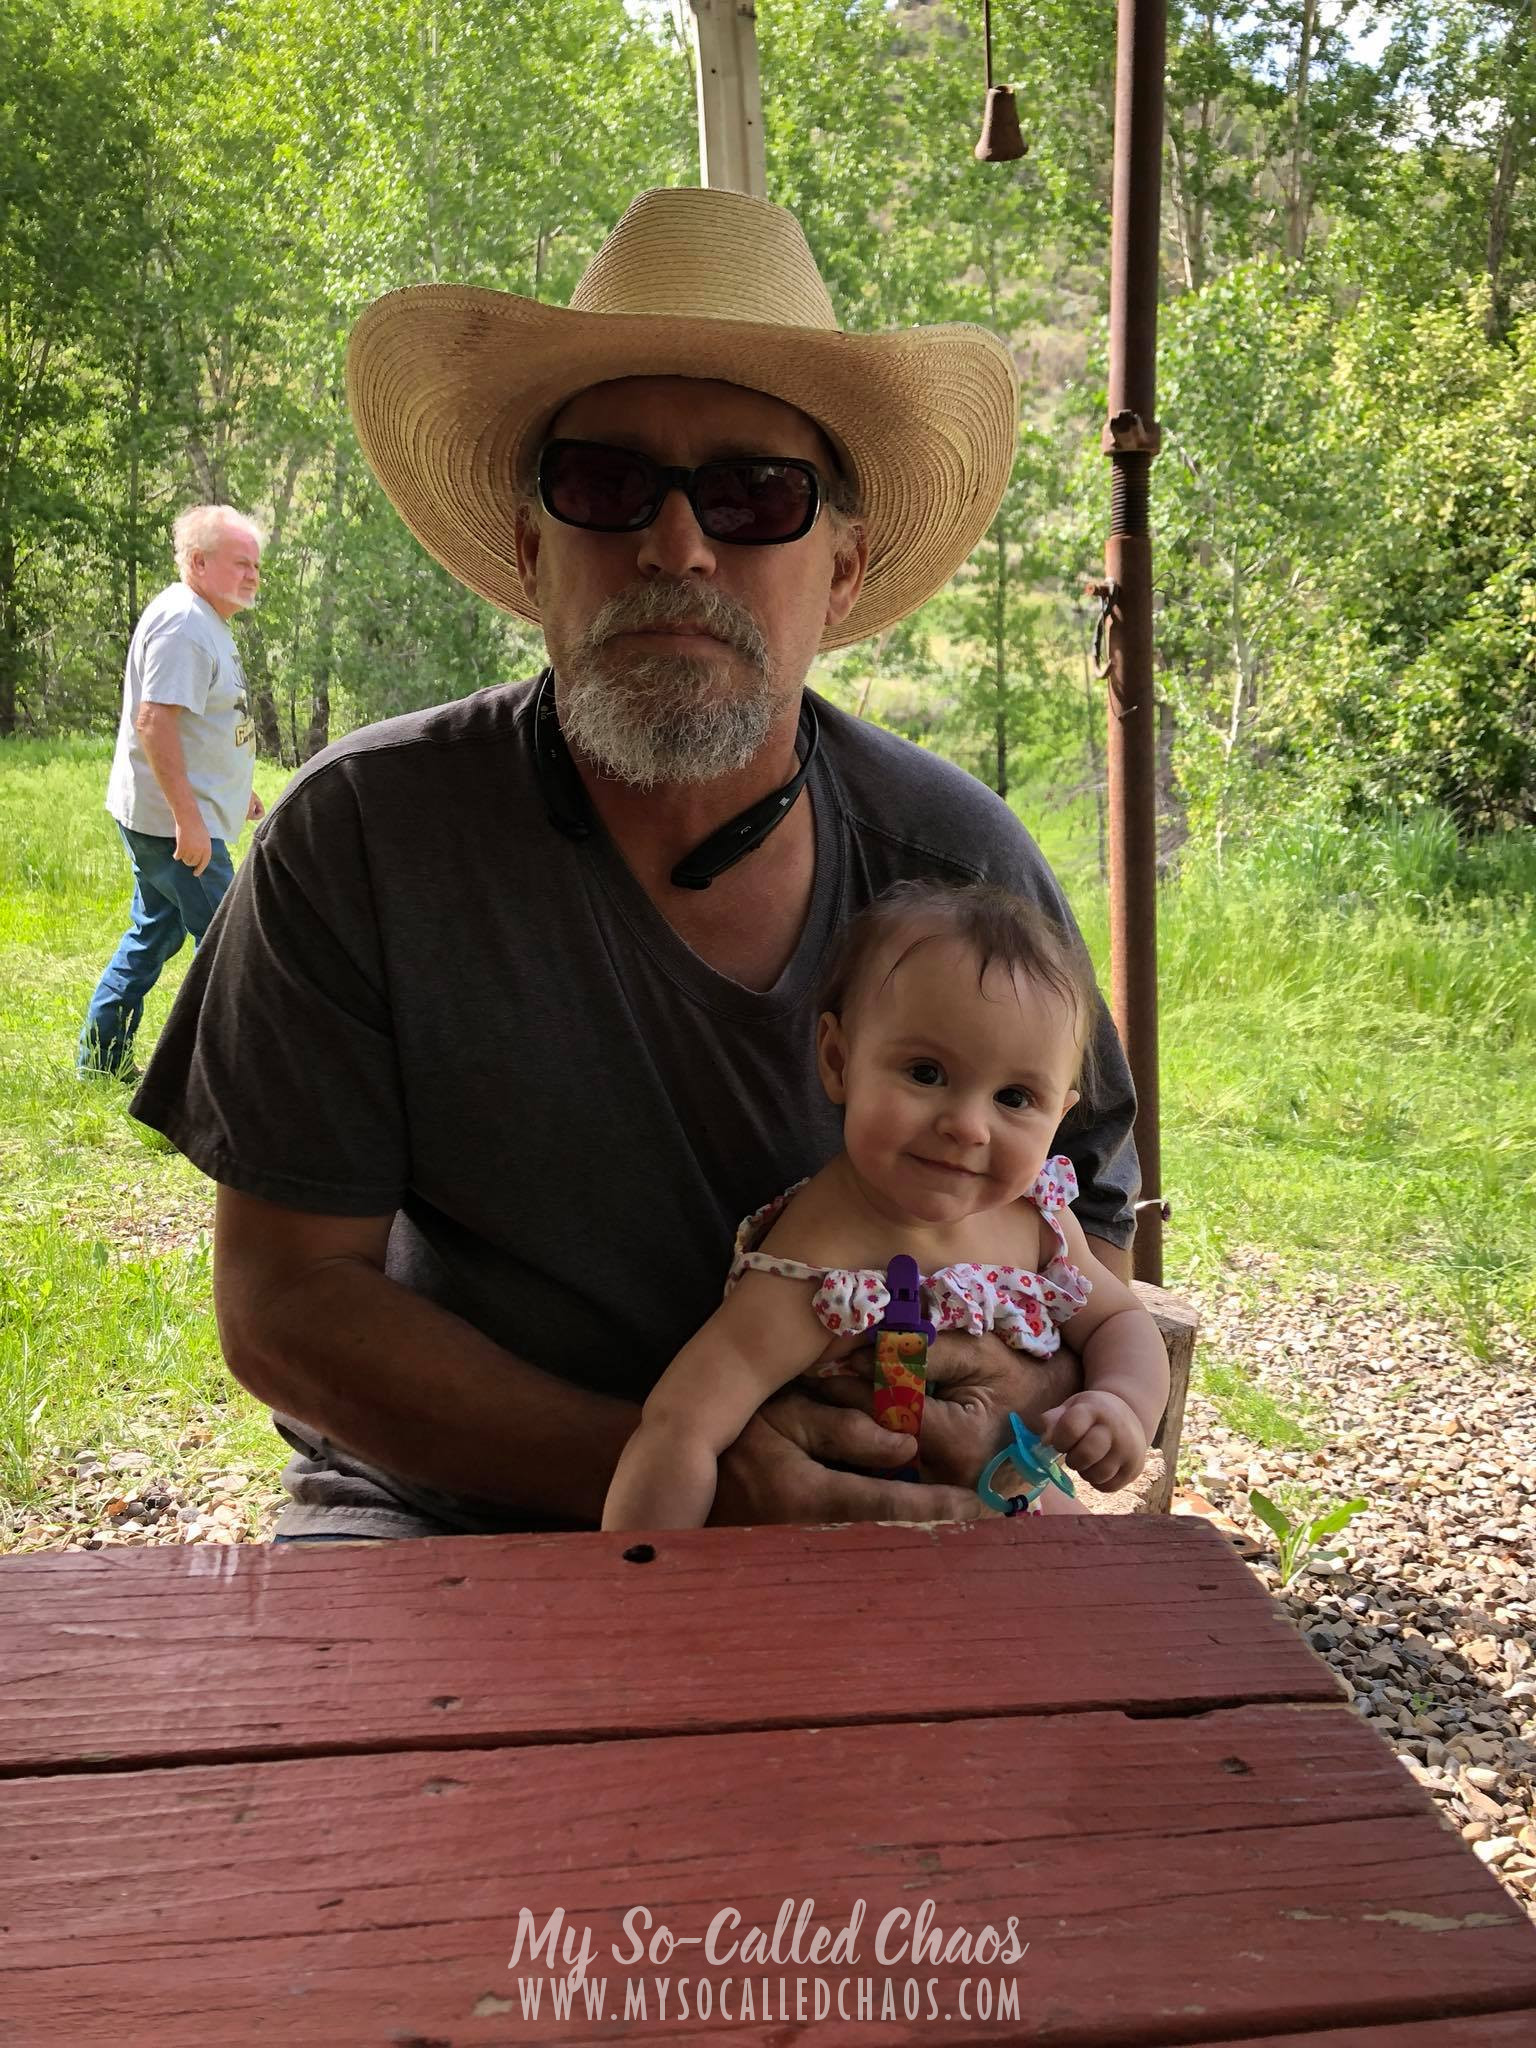 Man in a cowboy hat holding a baby girl in a Summer onesie and smiling at the camera.